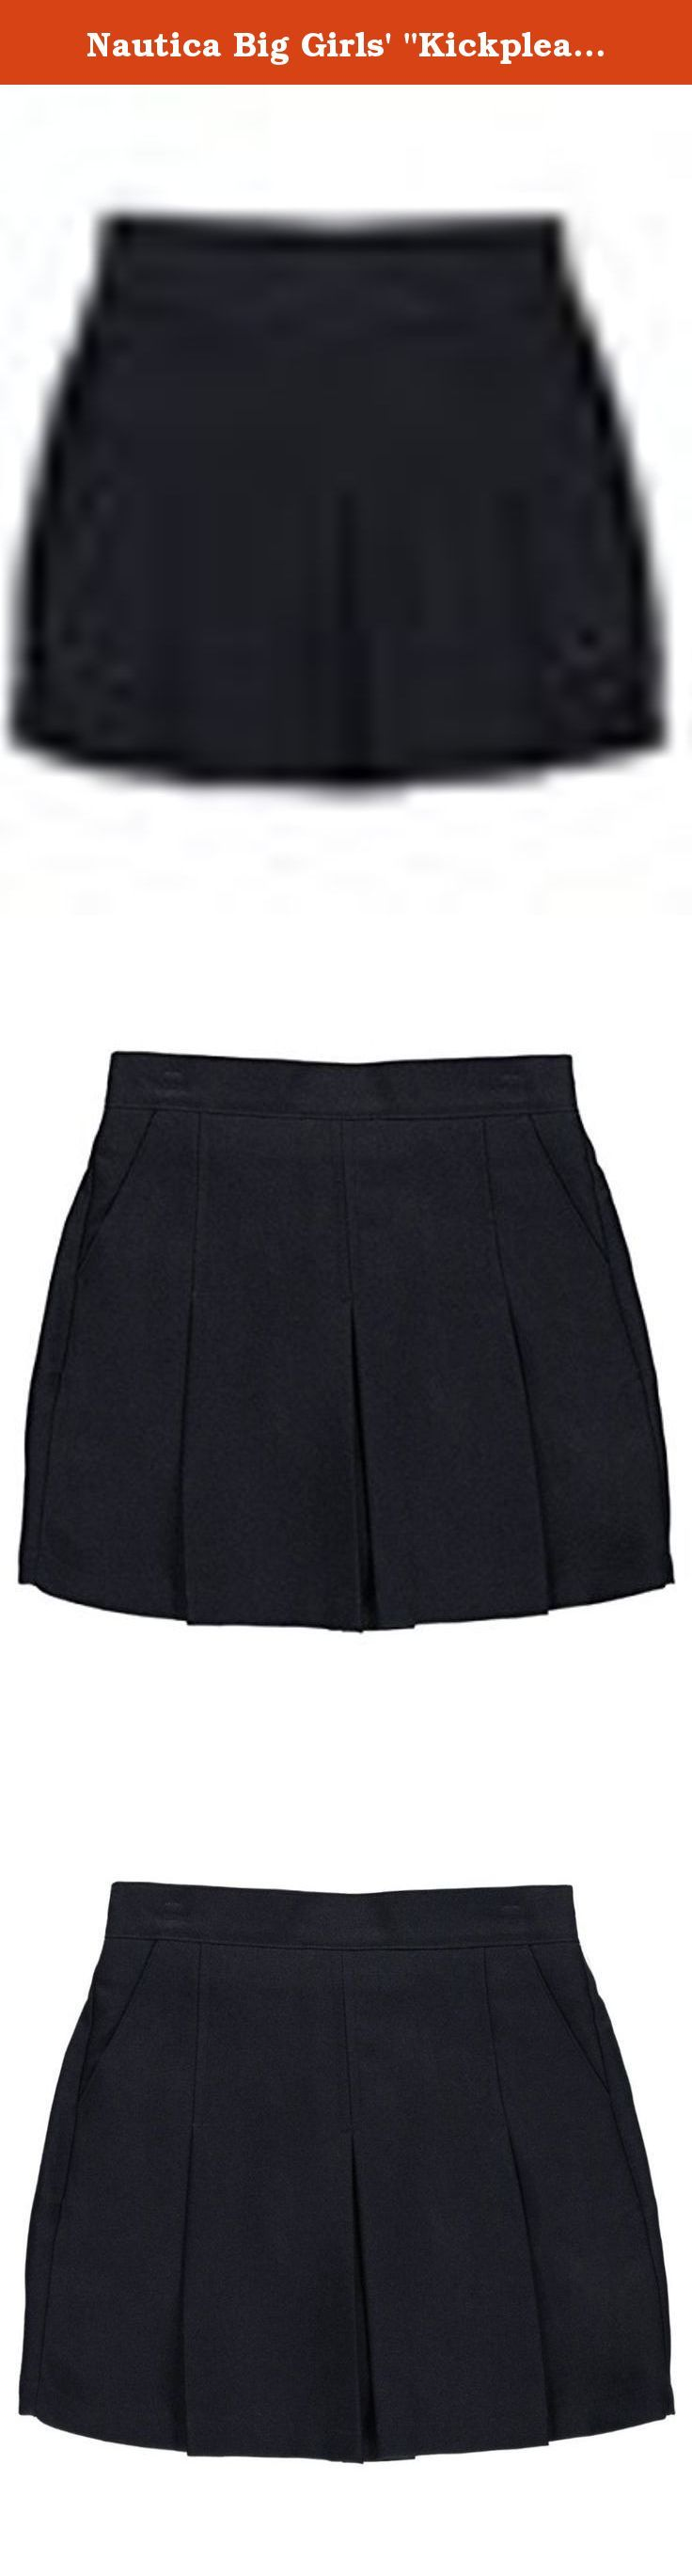 """Nautica Big Girls' """"Kickpleat"""" Scooter Skirt - navy, 14. For a classic look that's classroom appropriate, choose this Nautica jumper. Nautica scooter skirt Poly construction Angled pockets Elastic waistband Scooter shorts 100% polyester Machine wash warm Imported."""